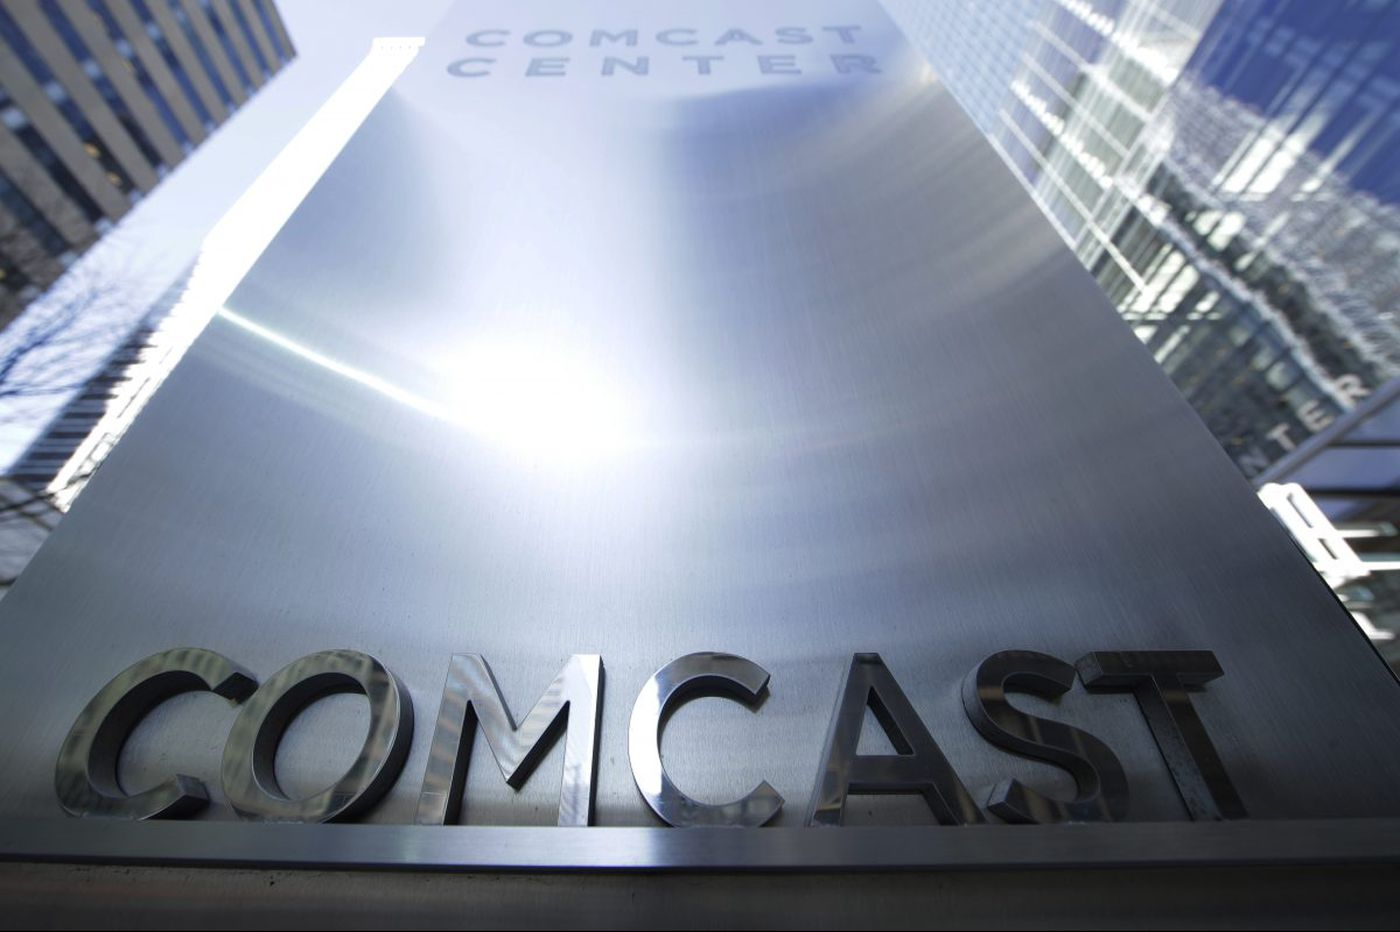 Comcast settles patent case with Sprint for $250 million